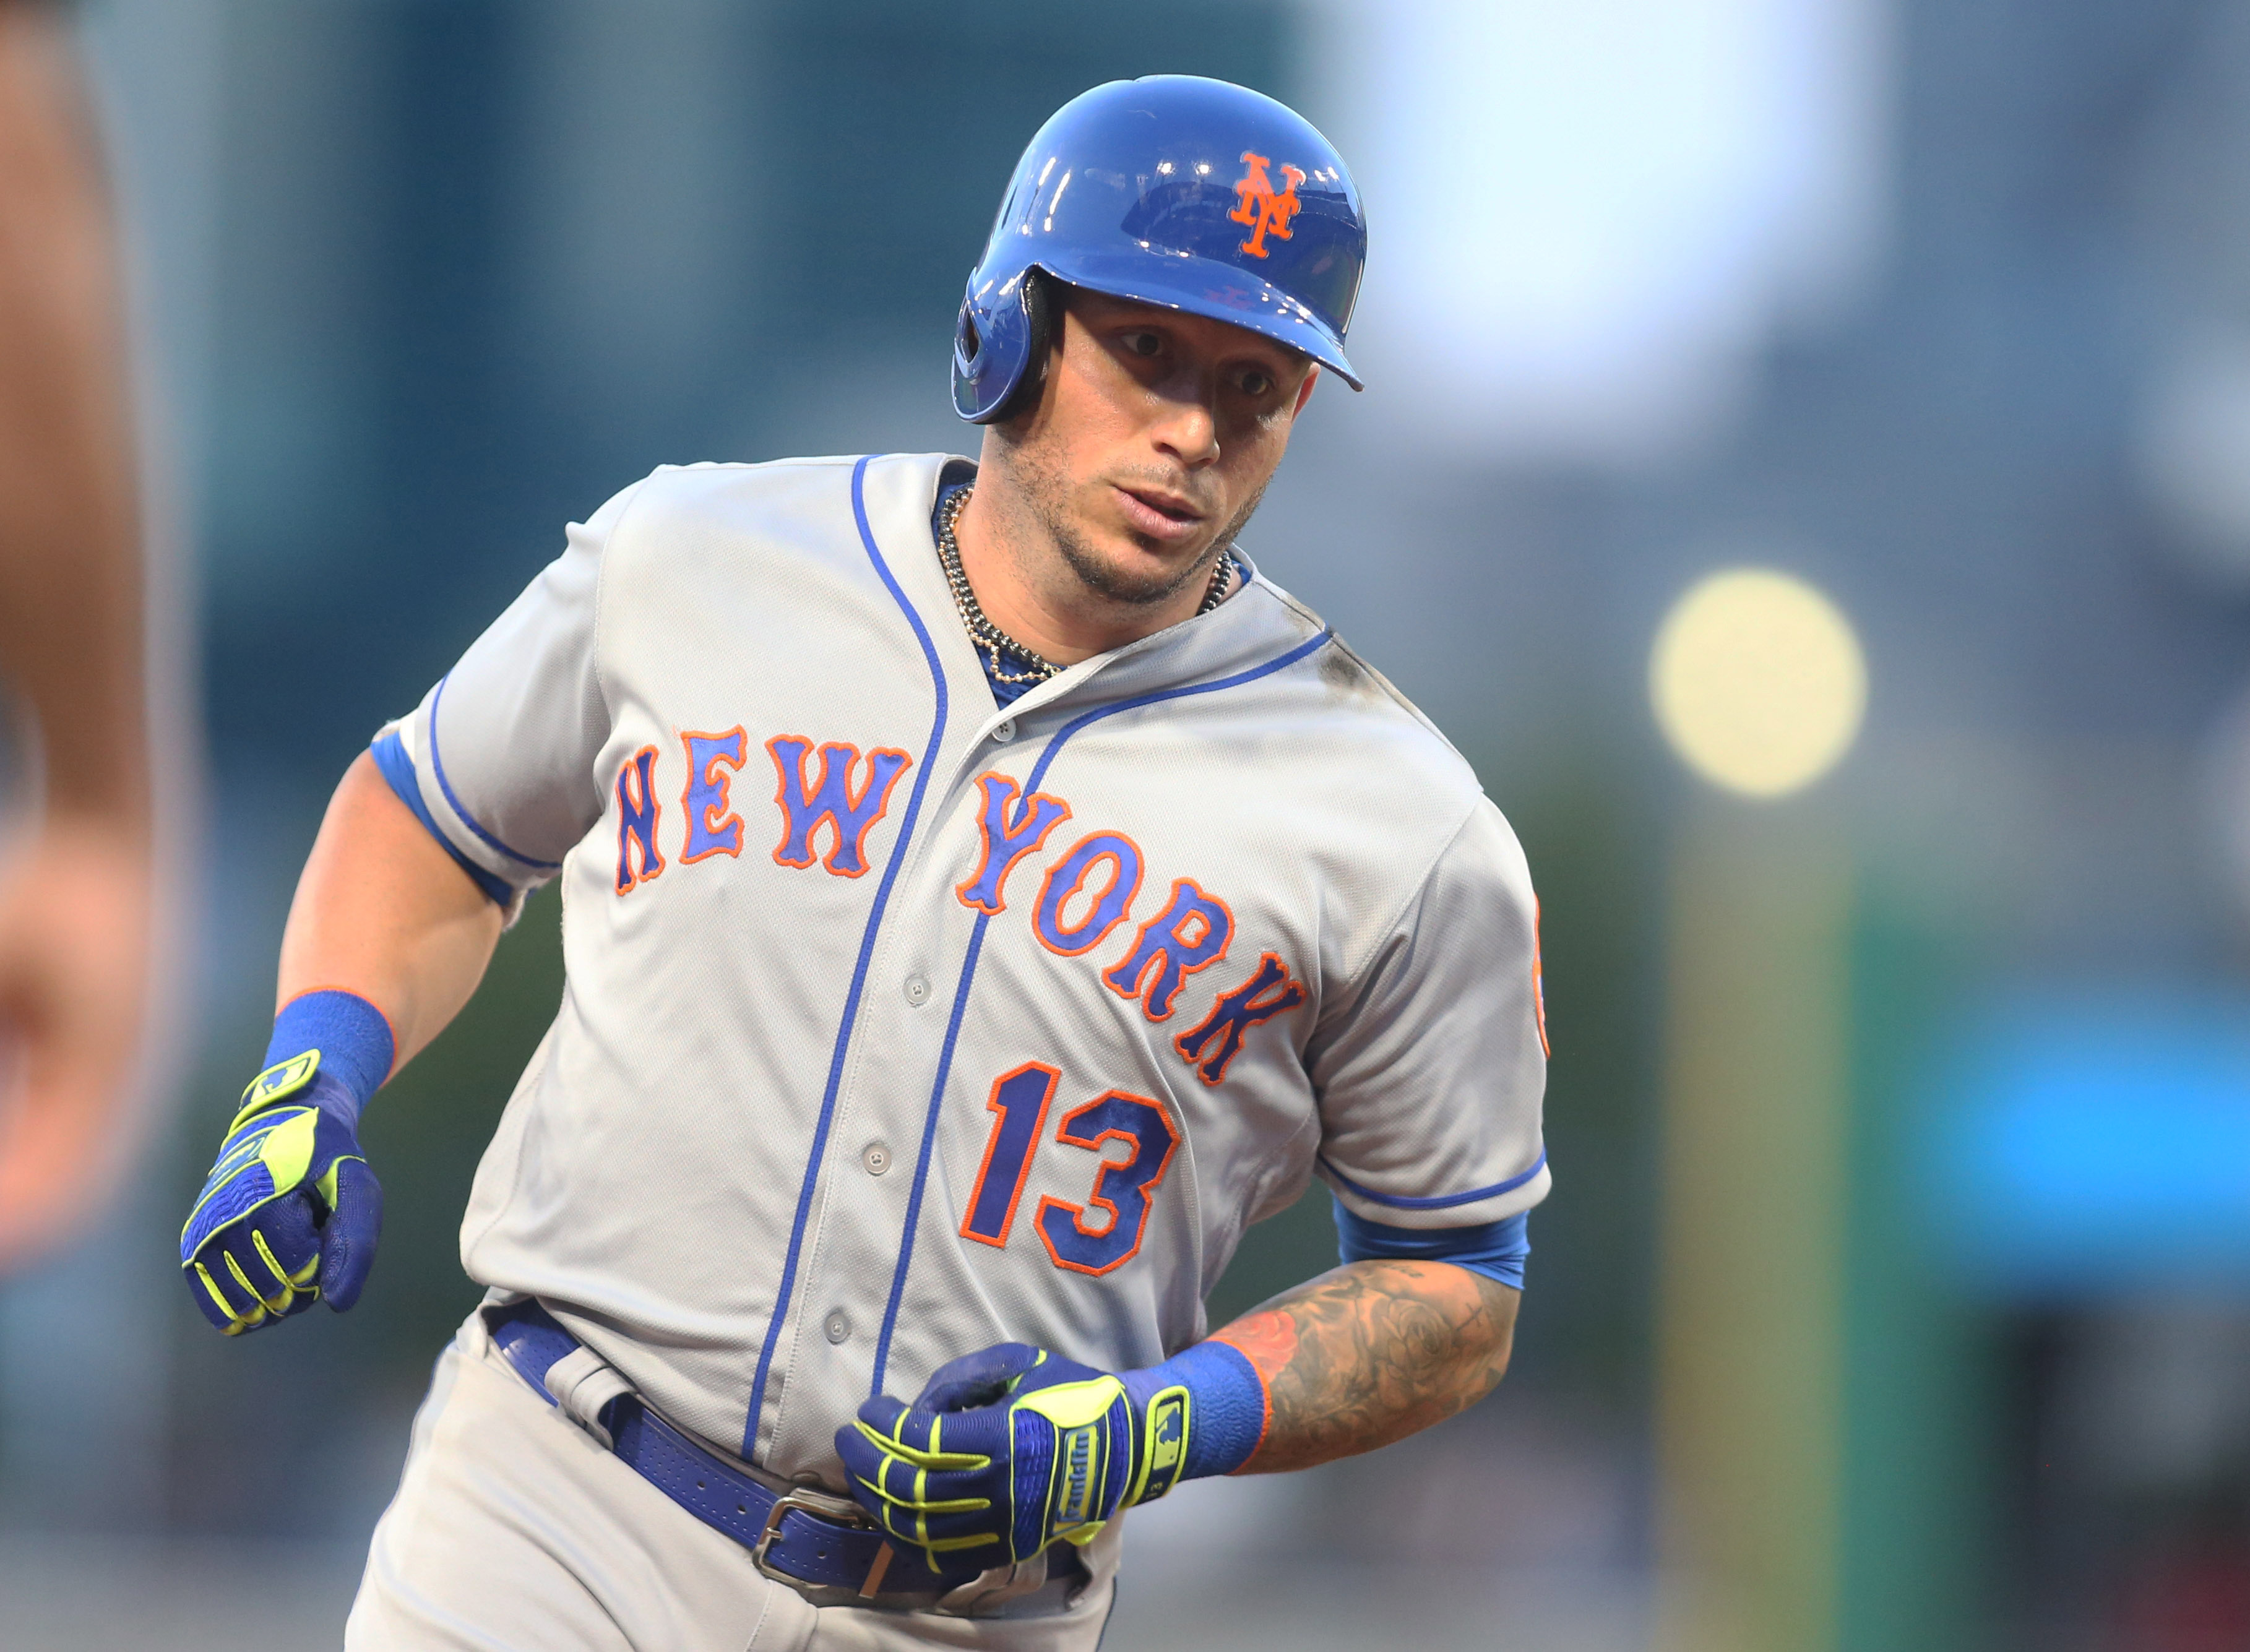 Report: Asdrubal Cabrera Could Be Dealt Very Soon